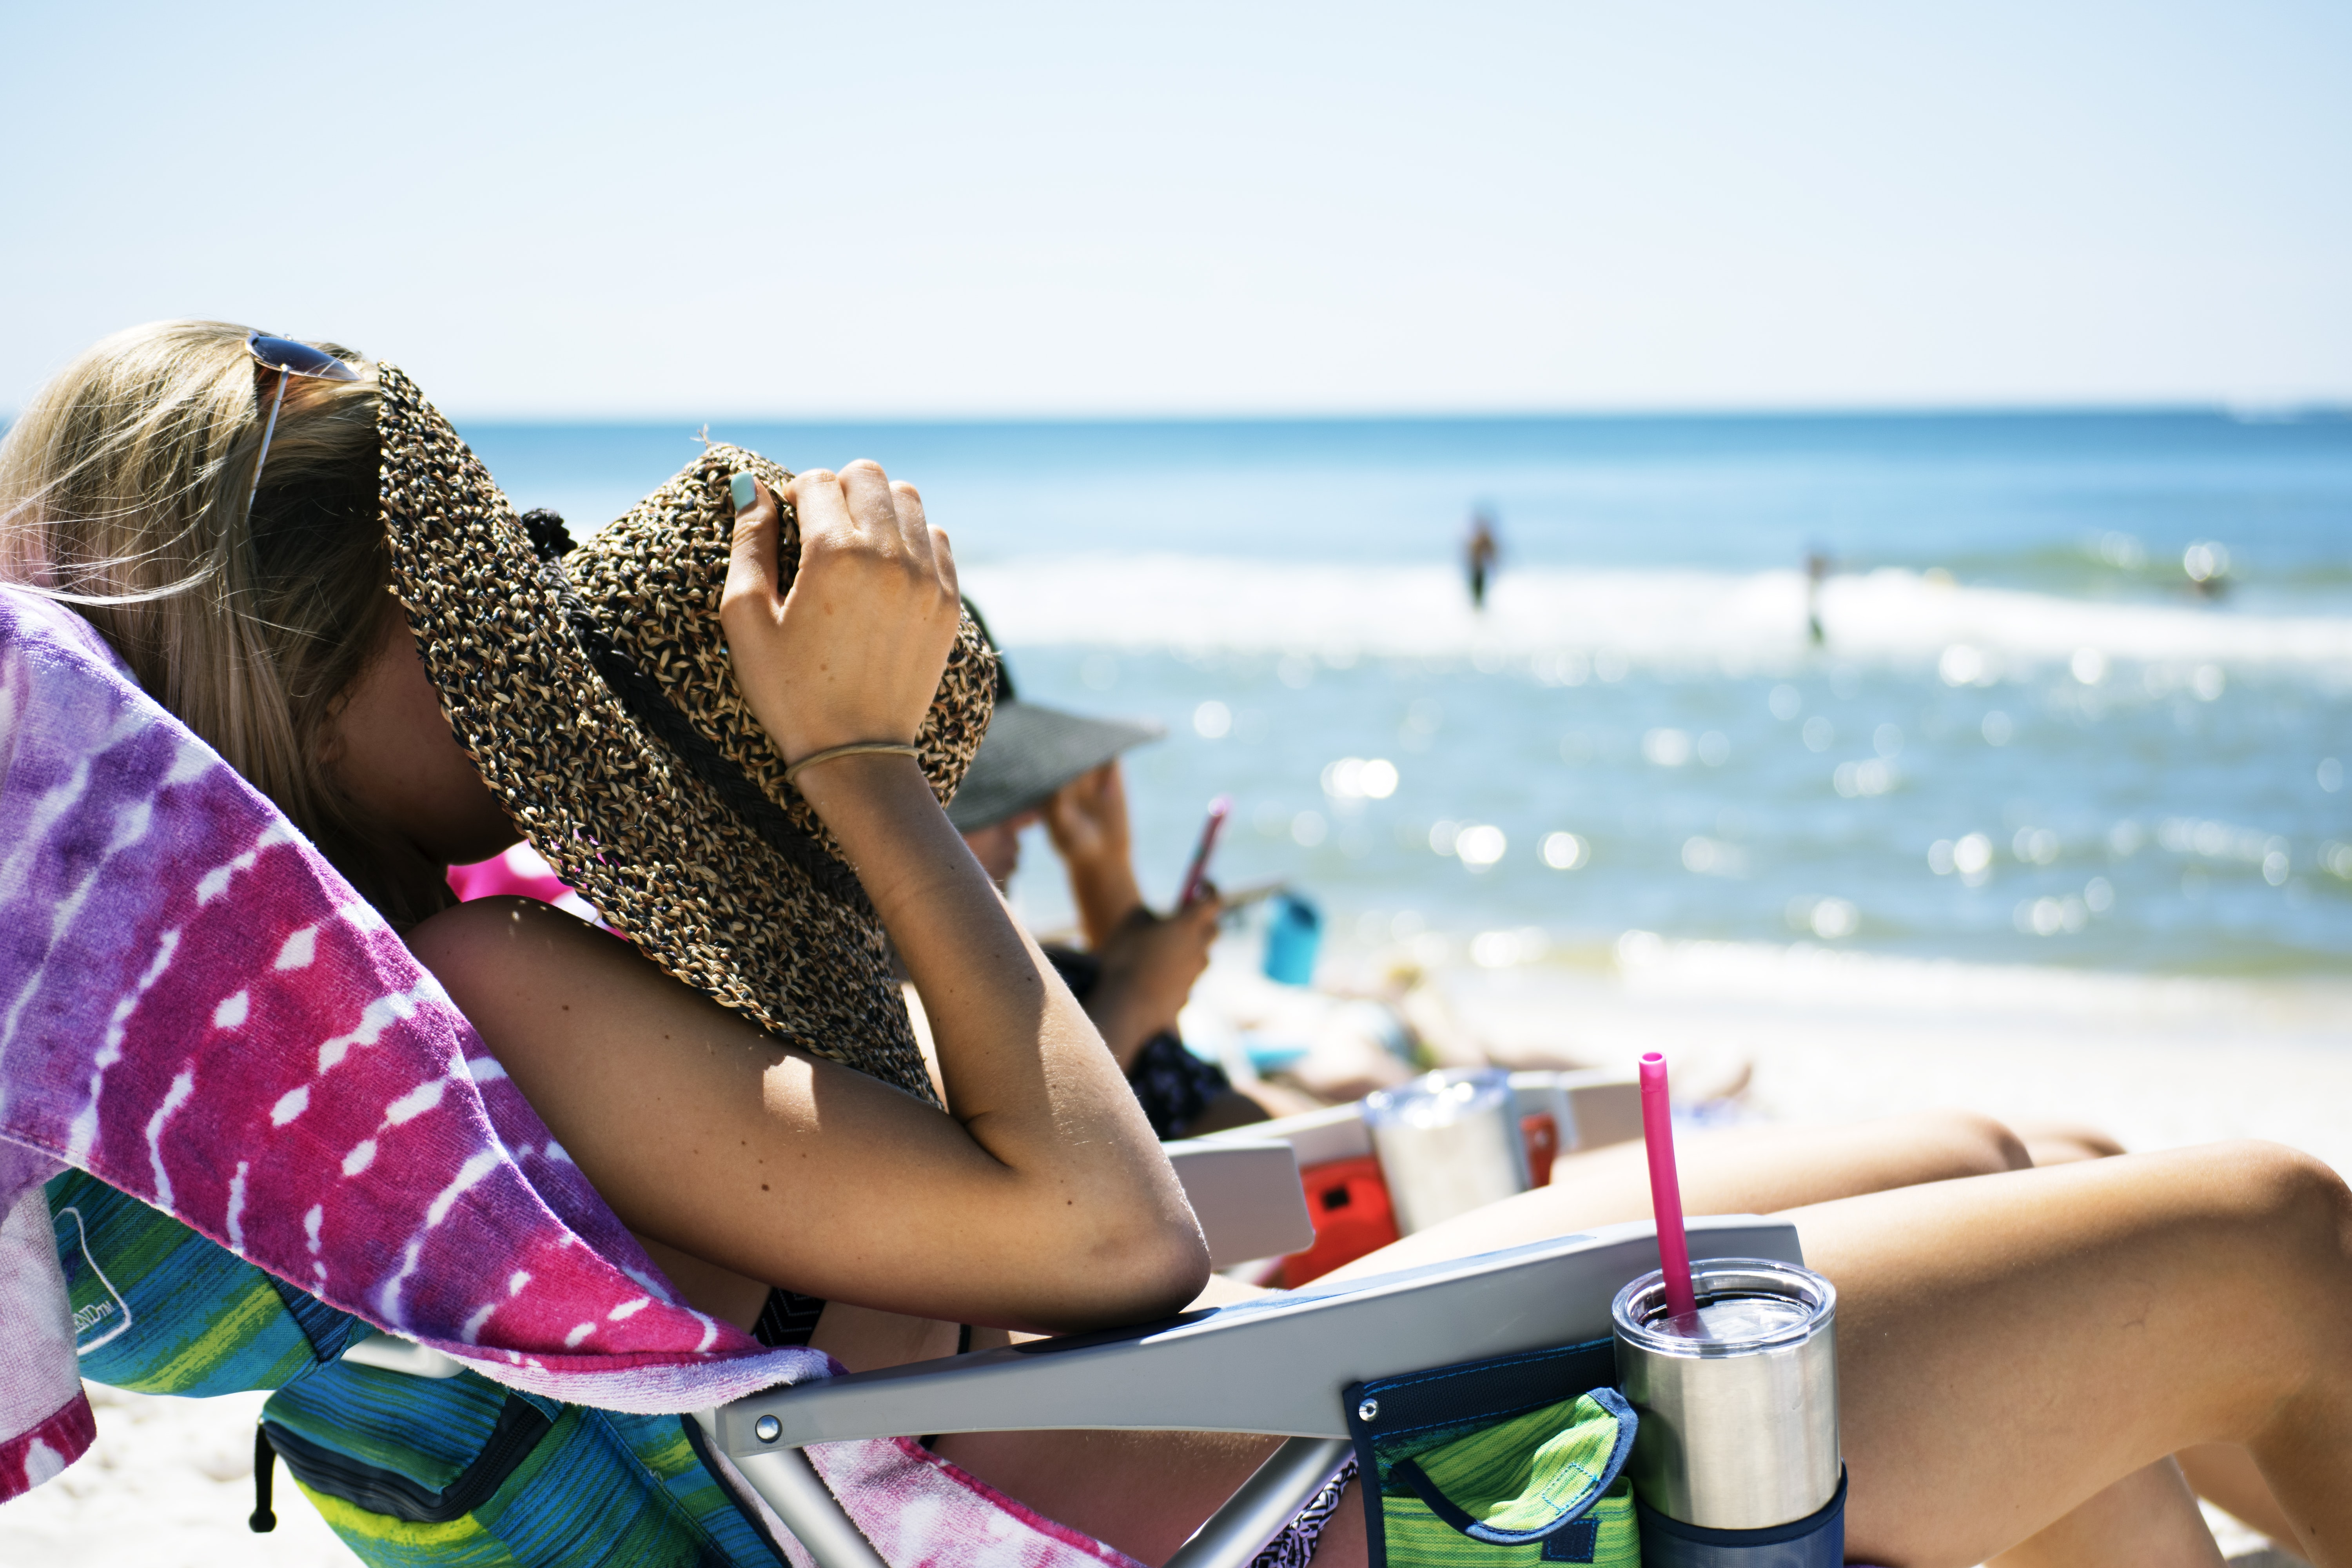 woman lying on sun lounger covering her face with straw hat near sea